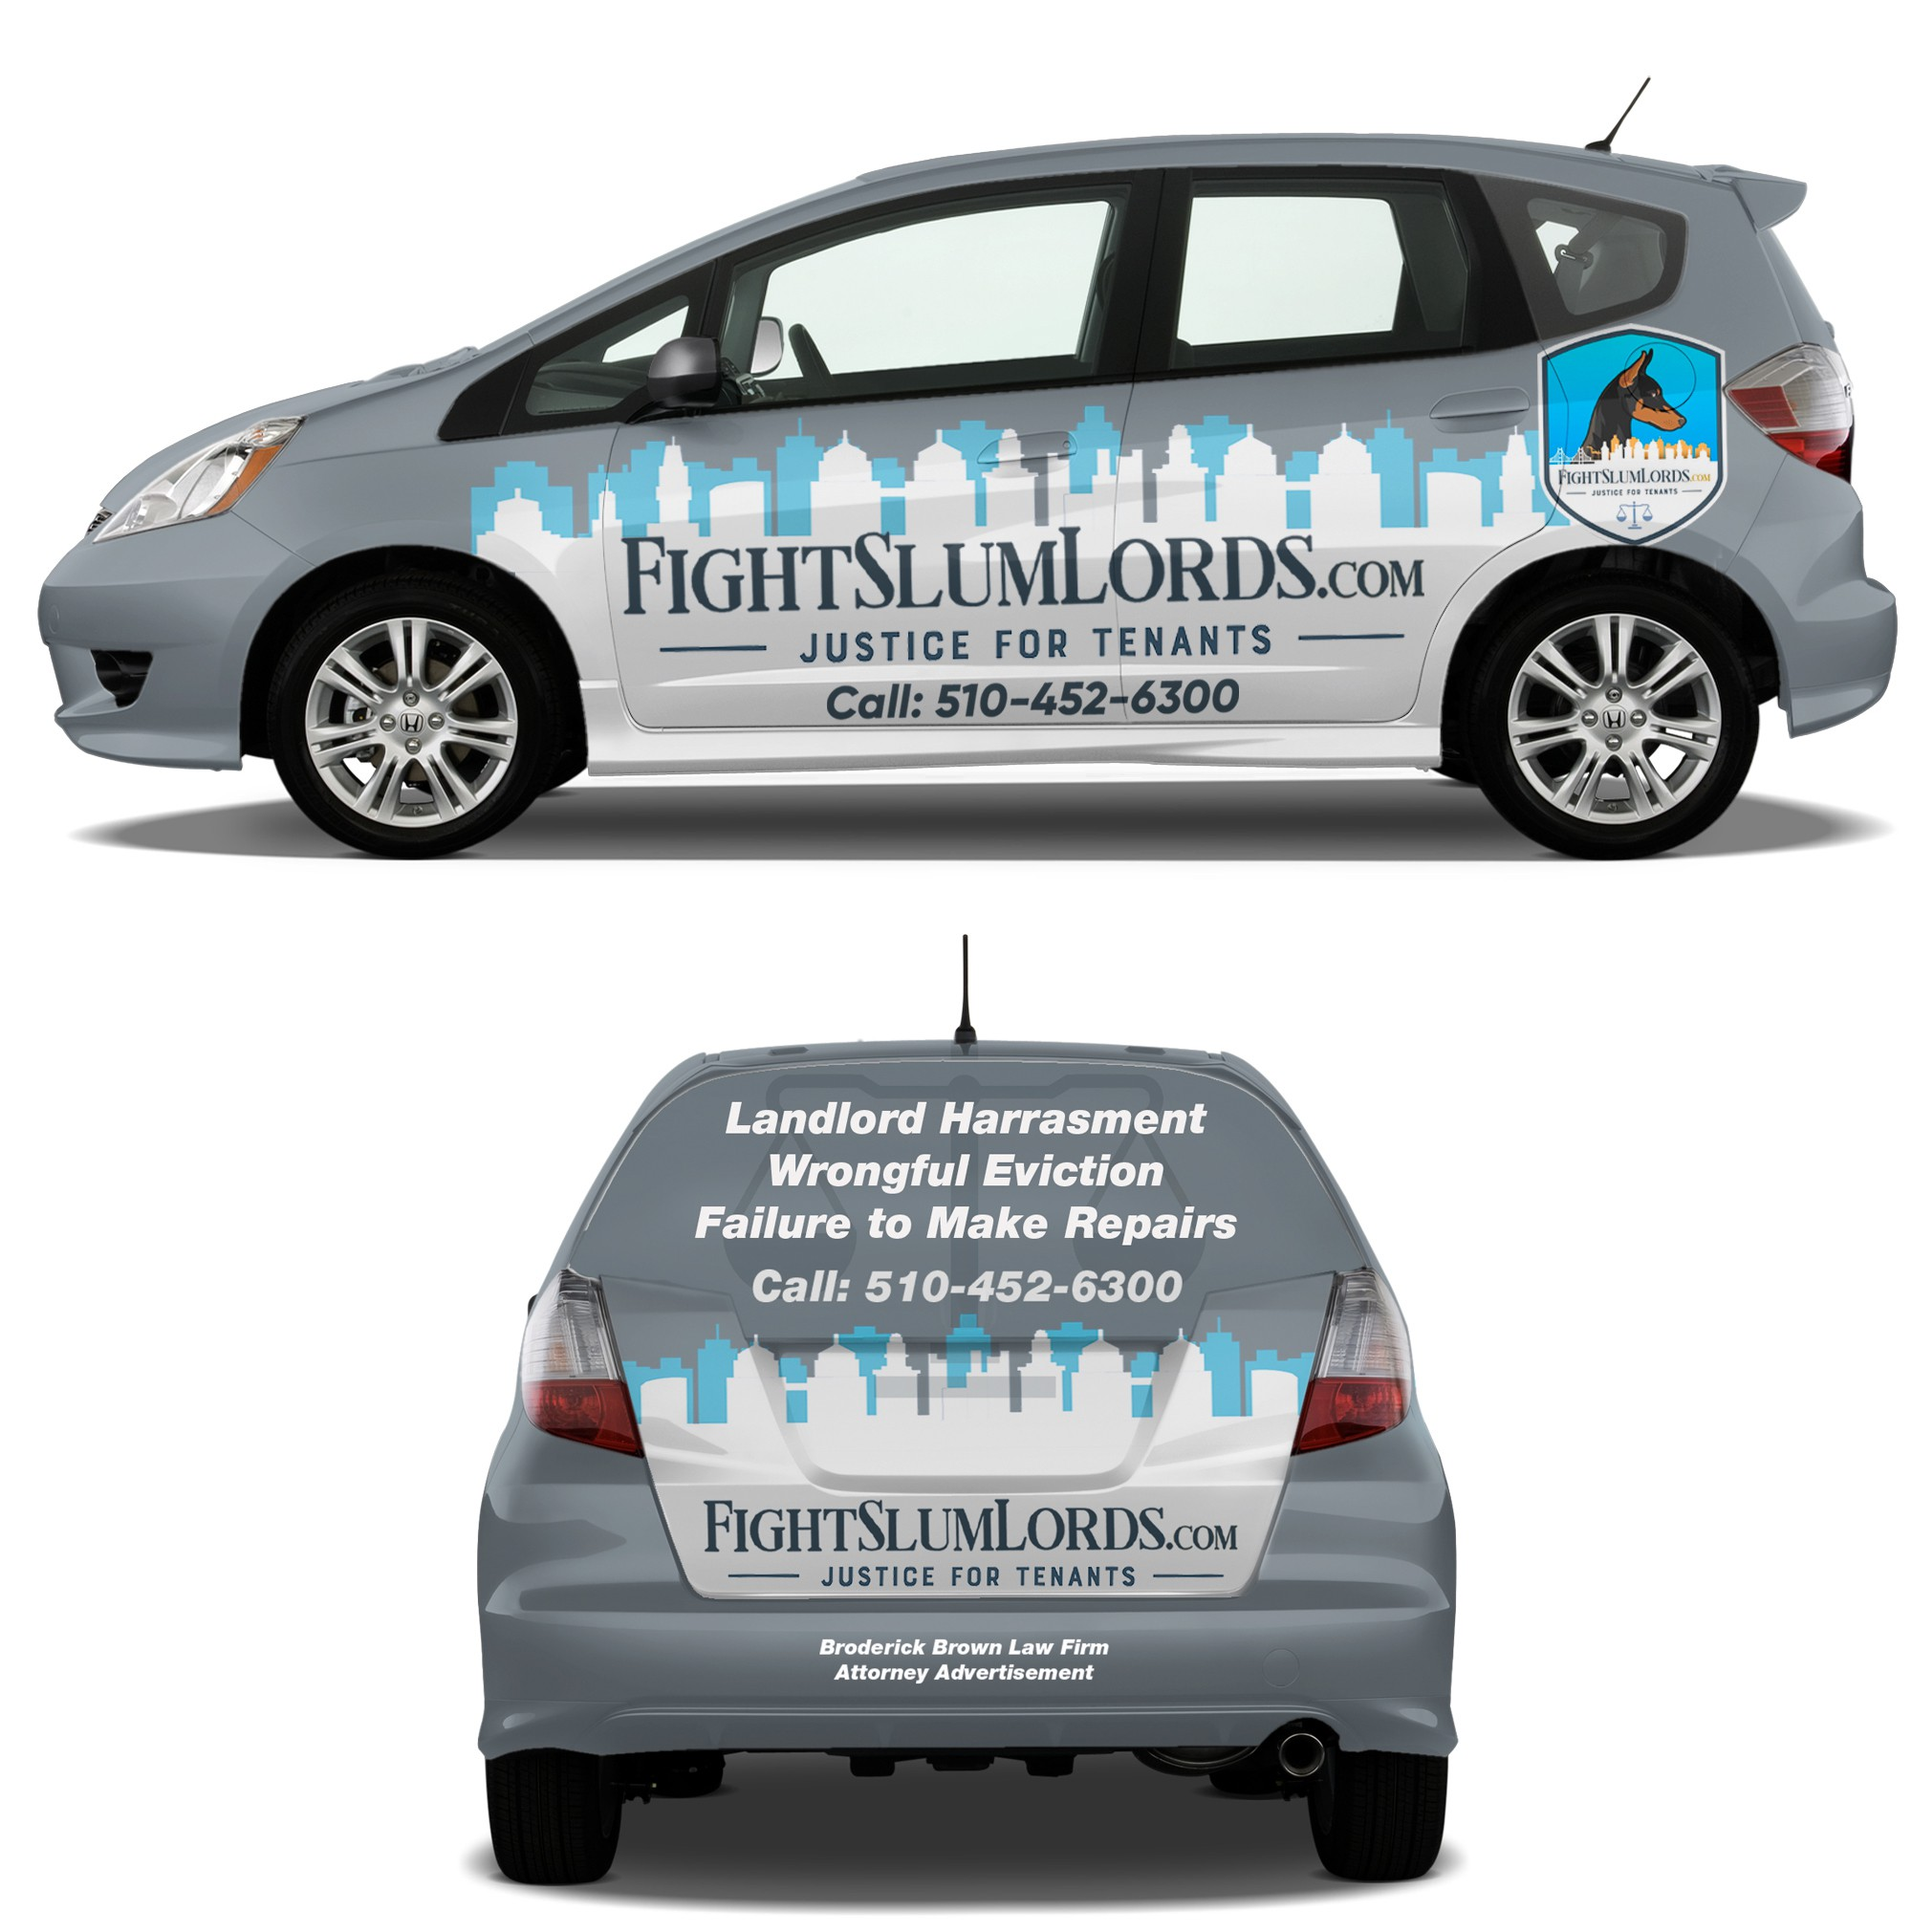 Car Wrap for Law Firm